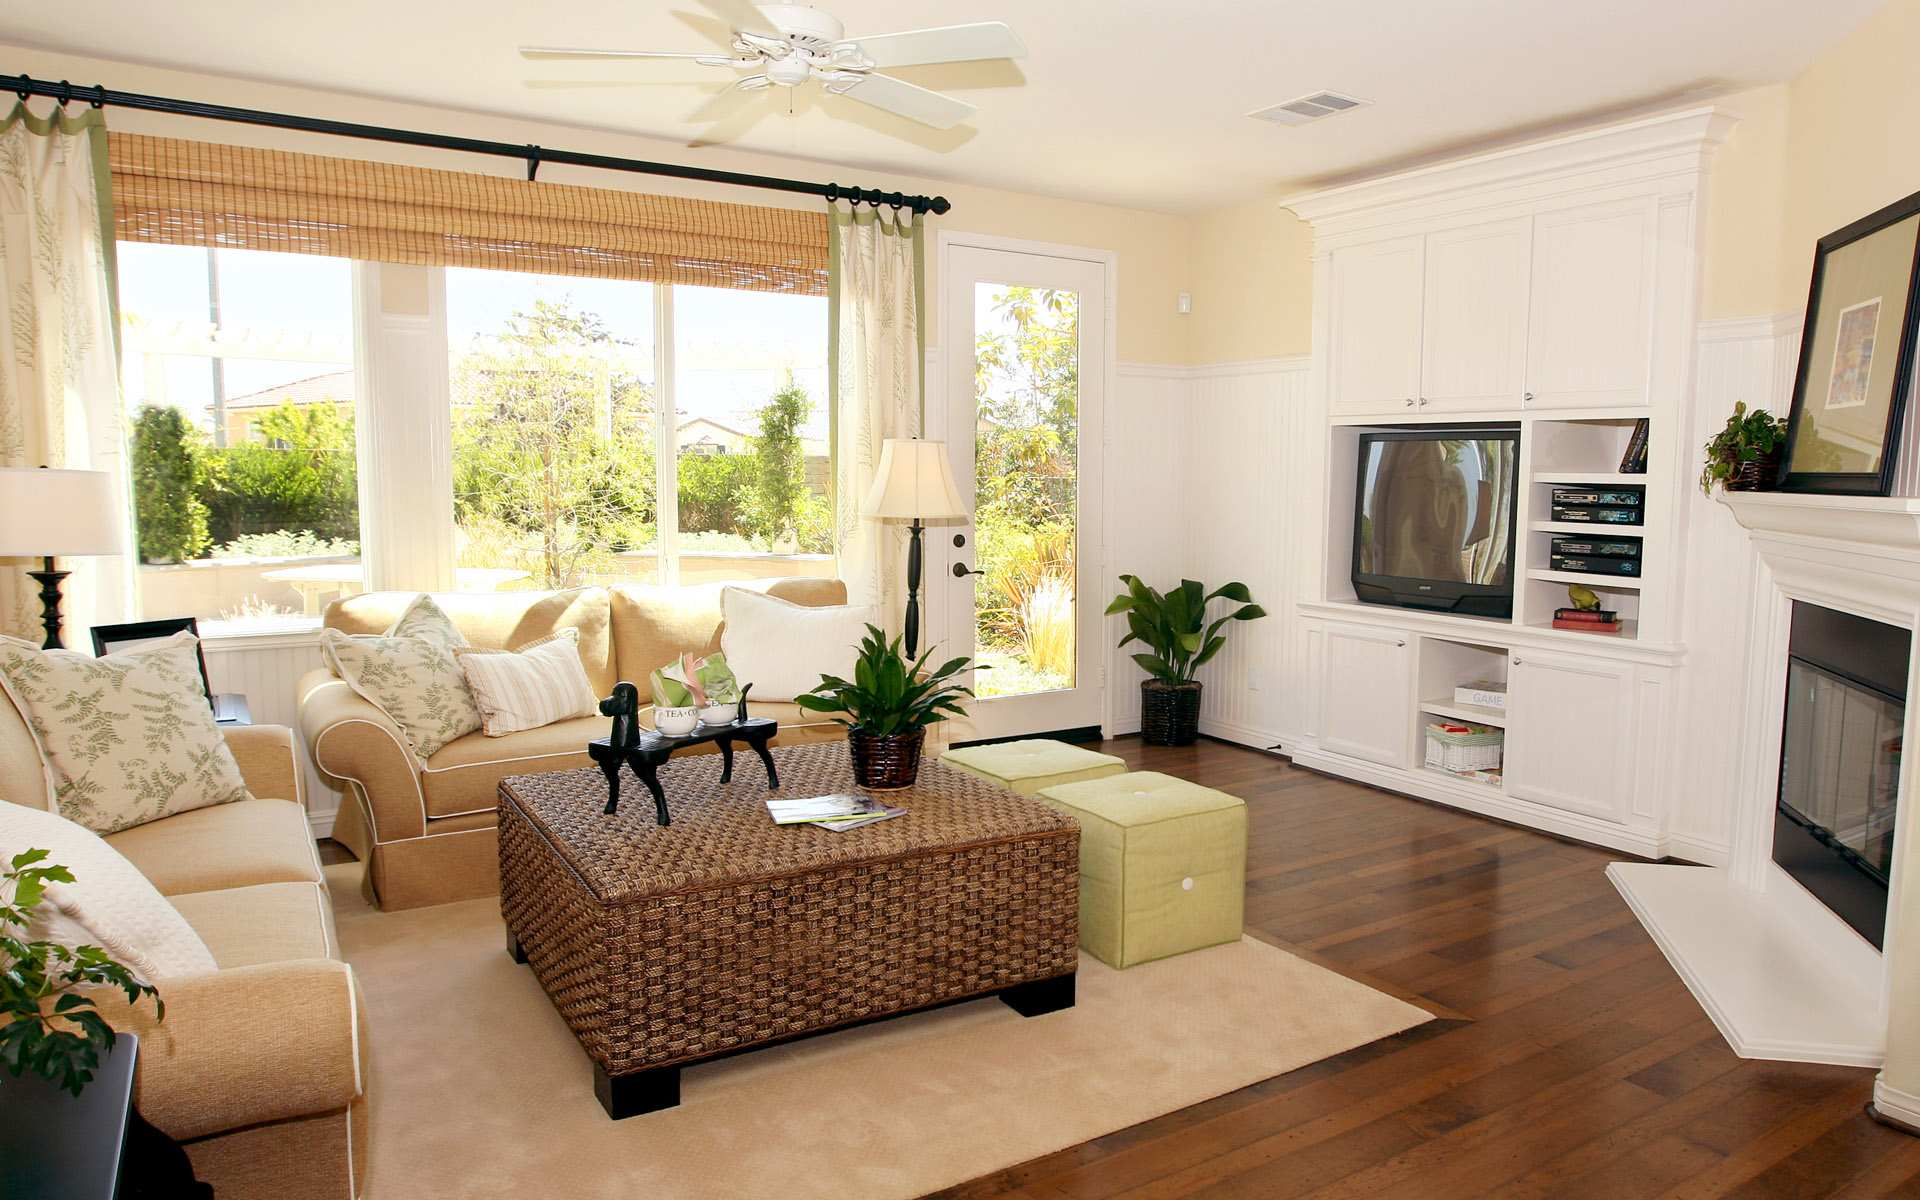 grand living space decor using beige sofa and coffee table - Interior Design Tips Living Room